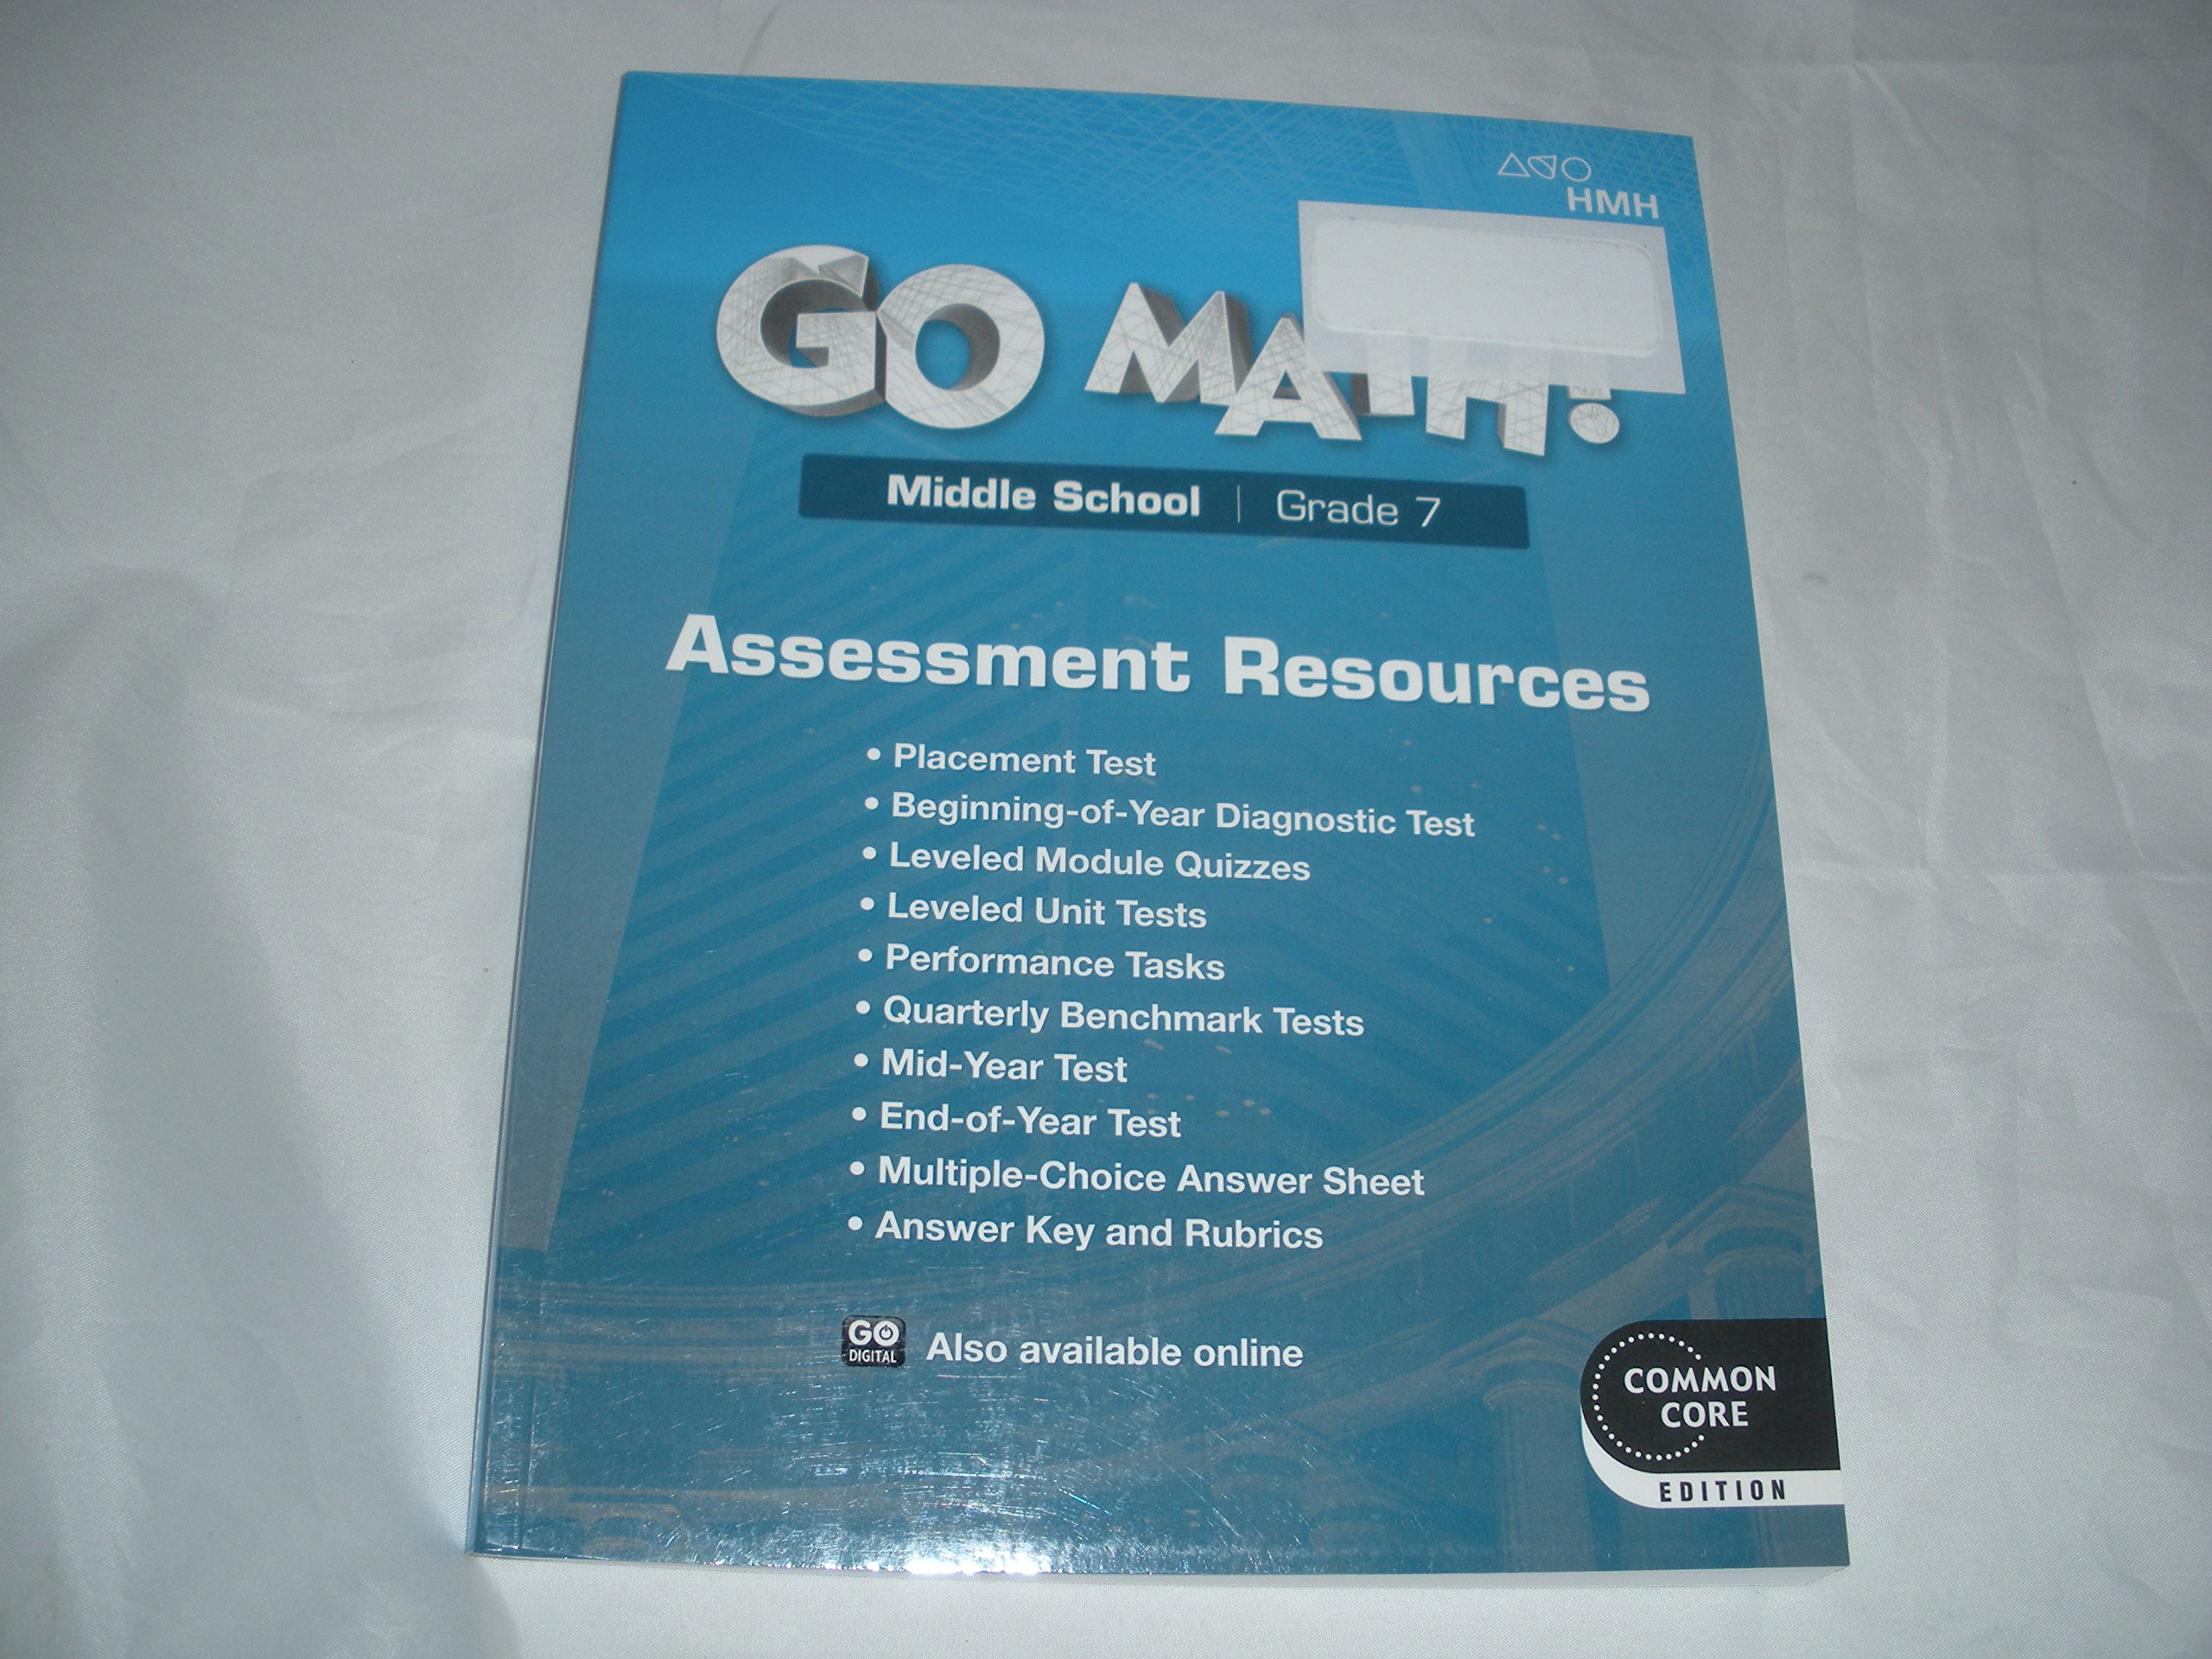 Go Math! Middle School Grade 7 Assessment Resources